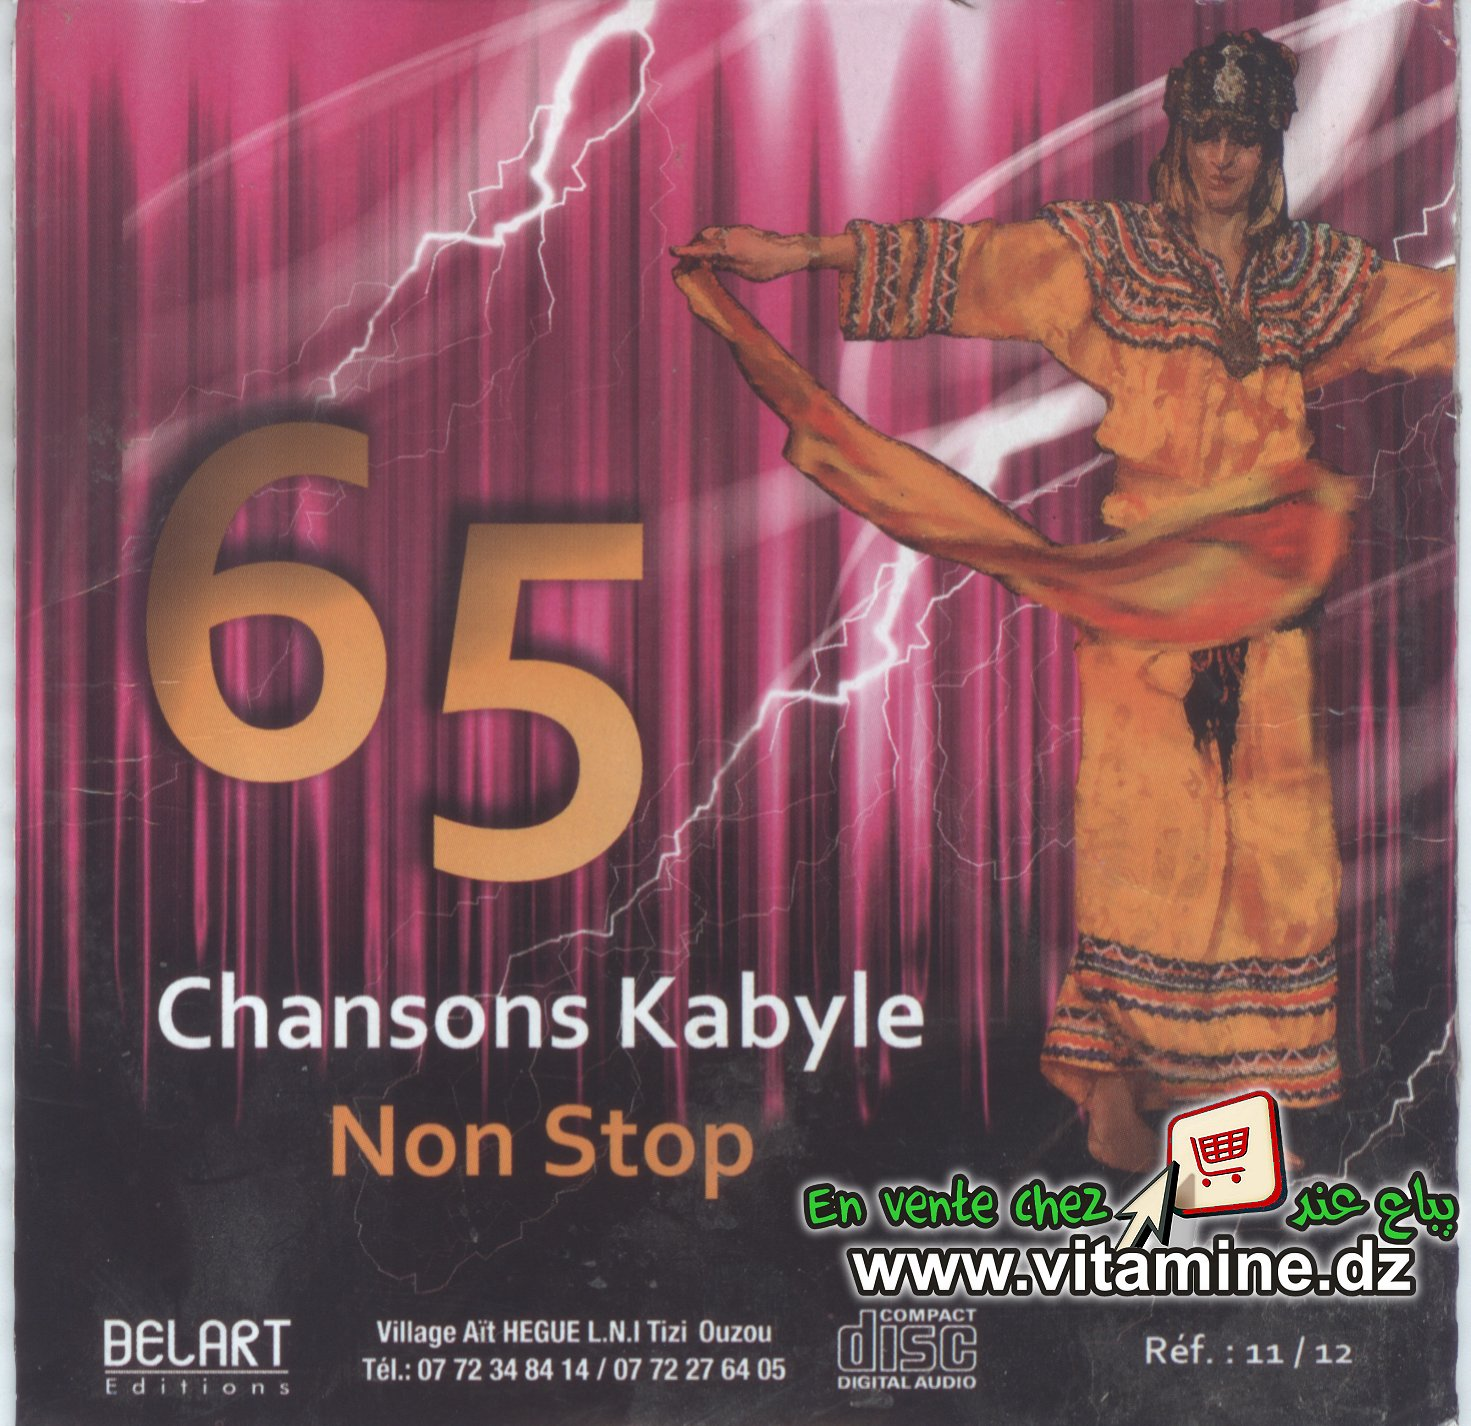 65 chansons kabyles non stop